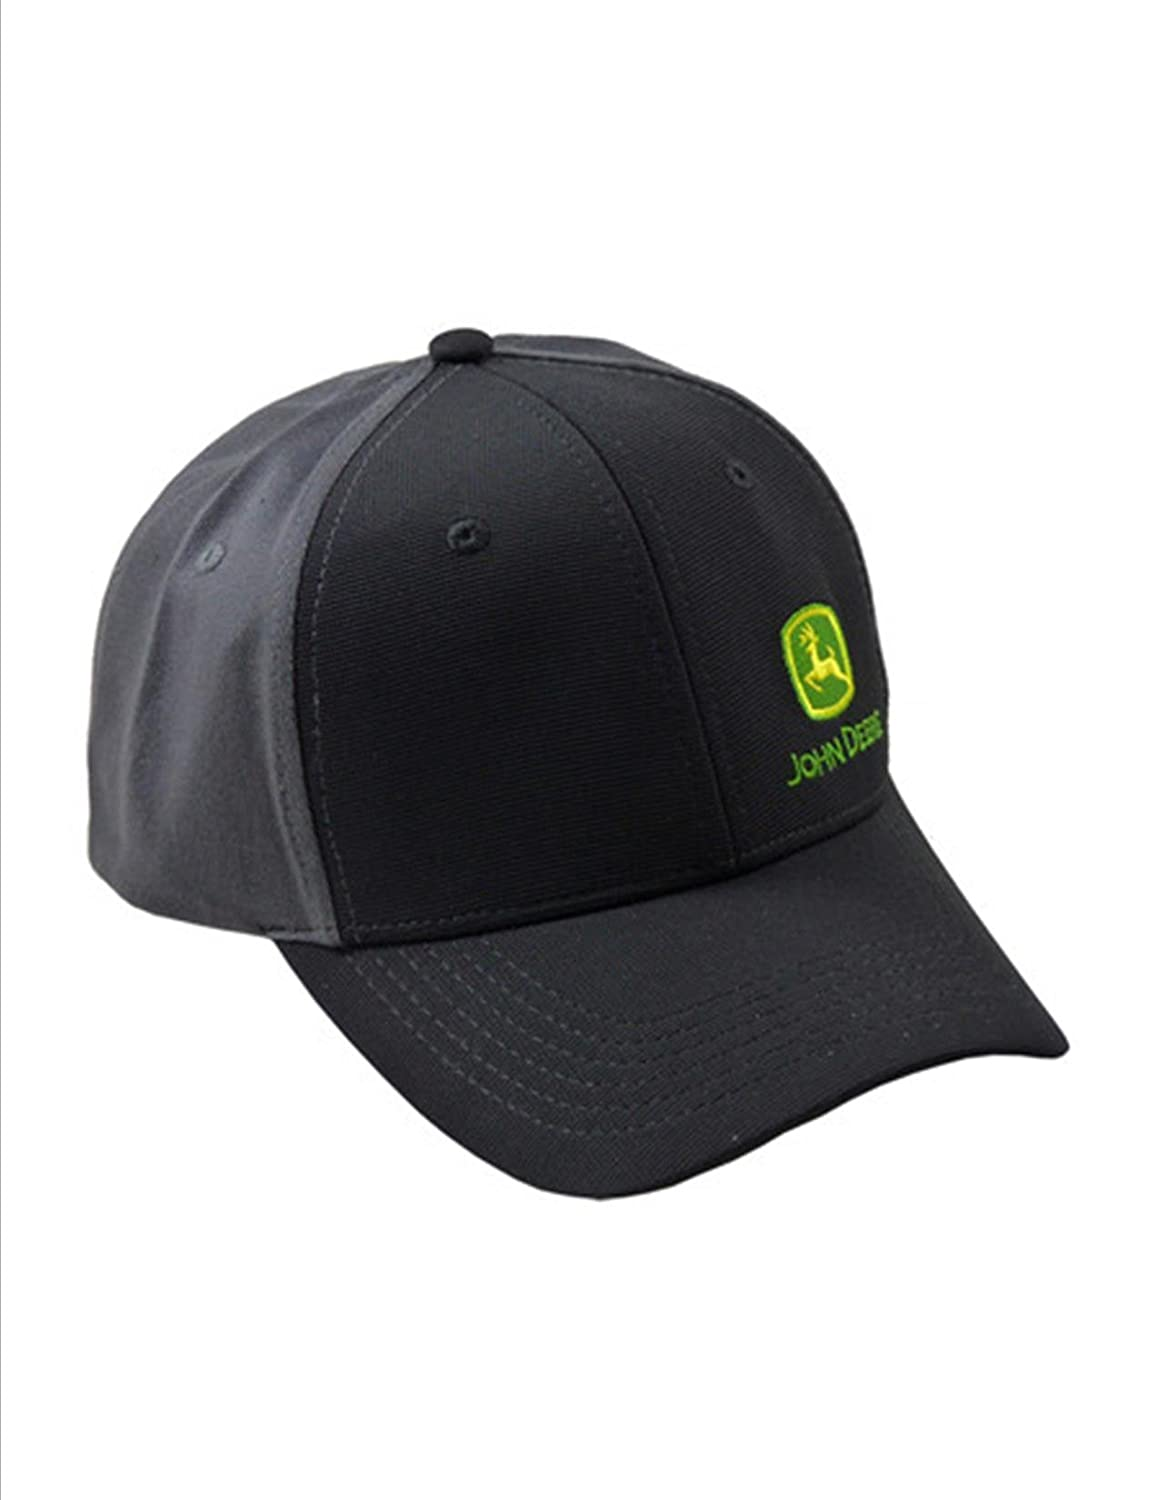 John Deere Black Synthetic Ottoman Cap Gray Twill Back Side Logo Cap Hat at  Amazon Men s Clothing store  5641c943a44